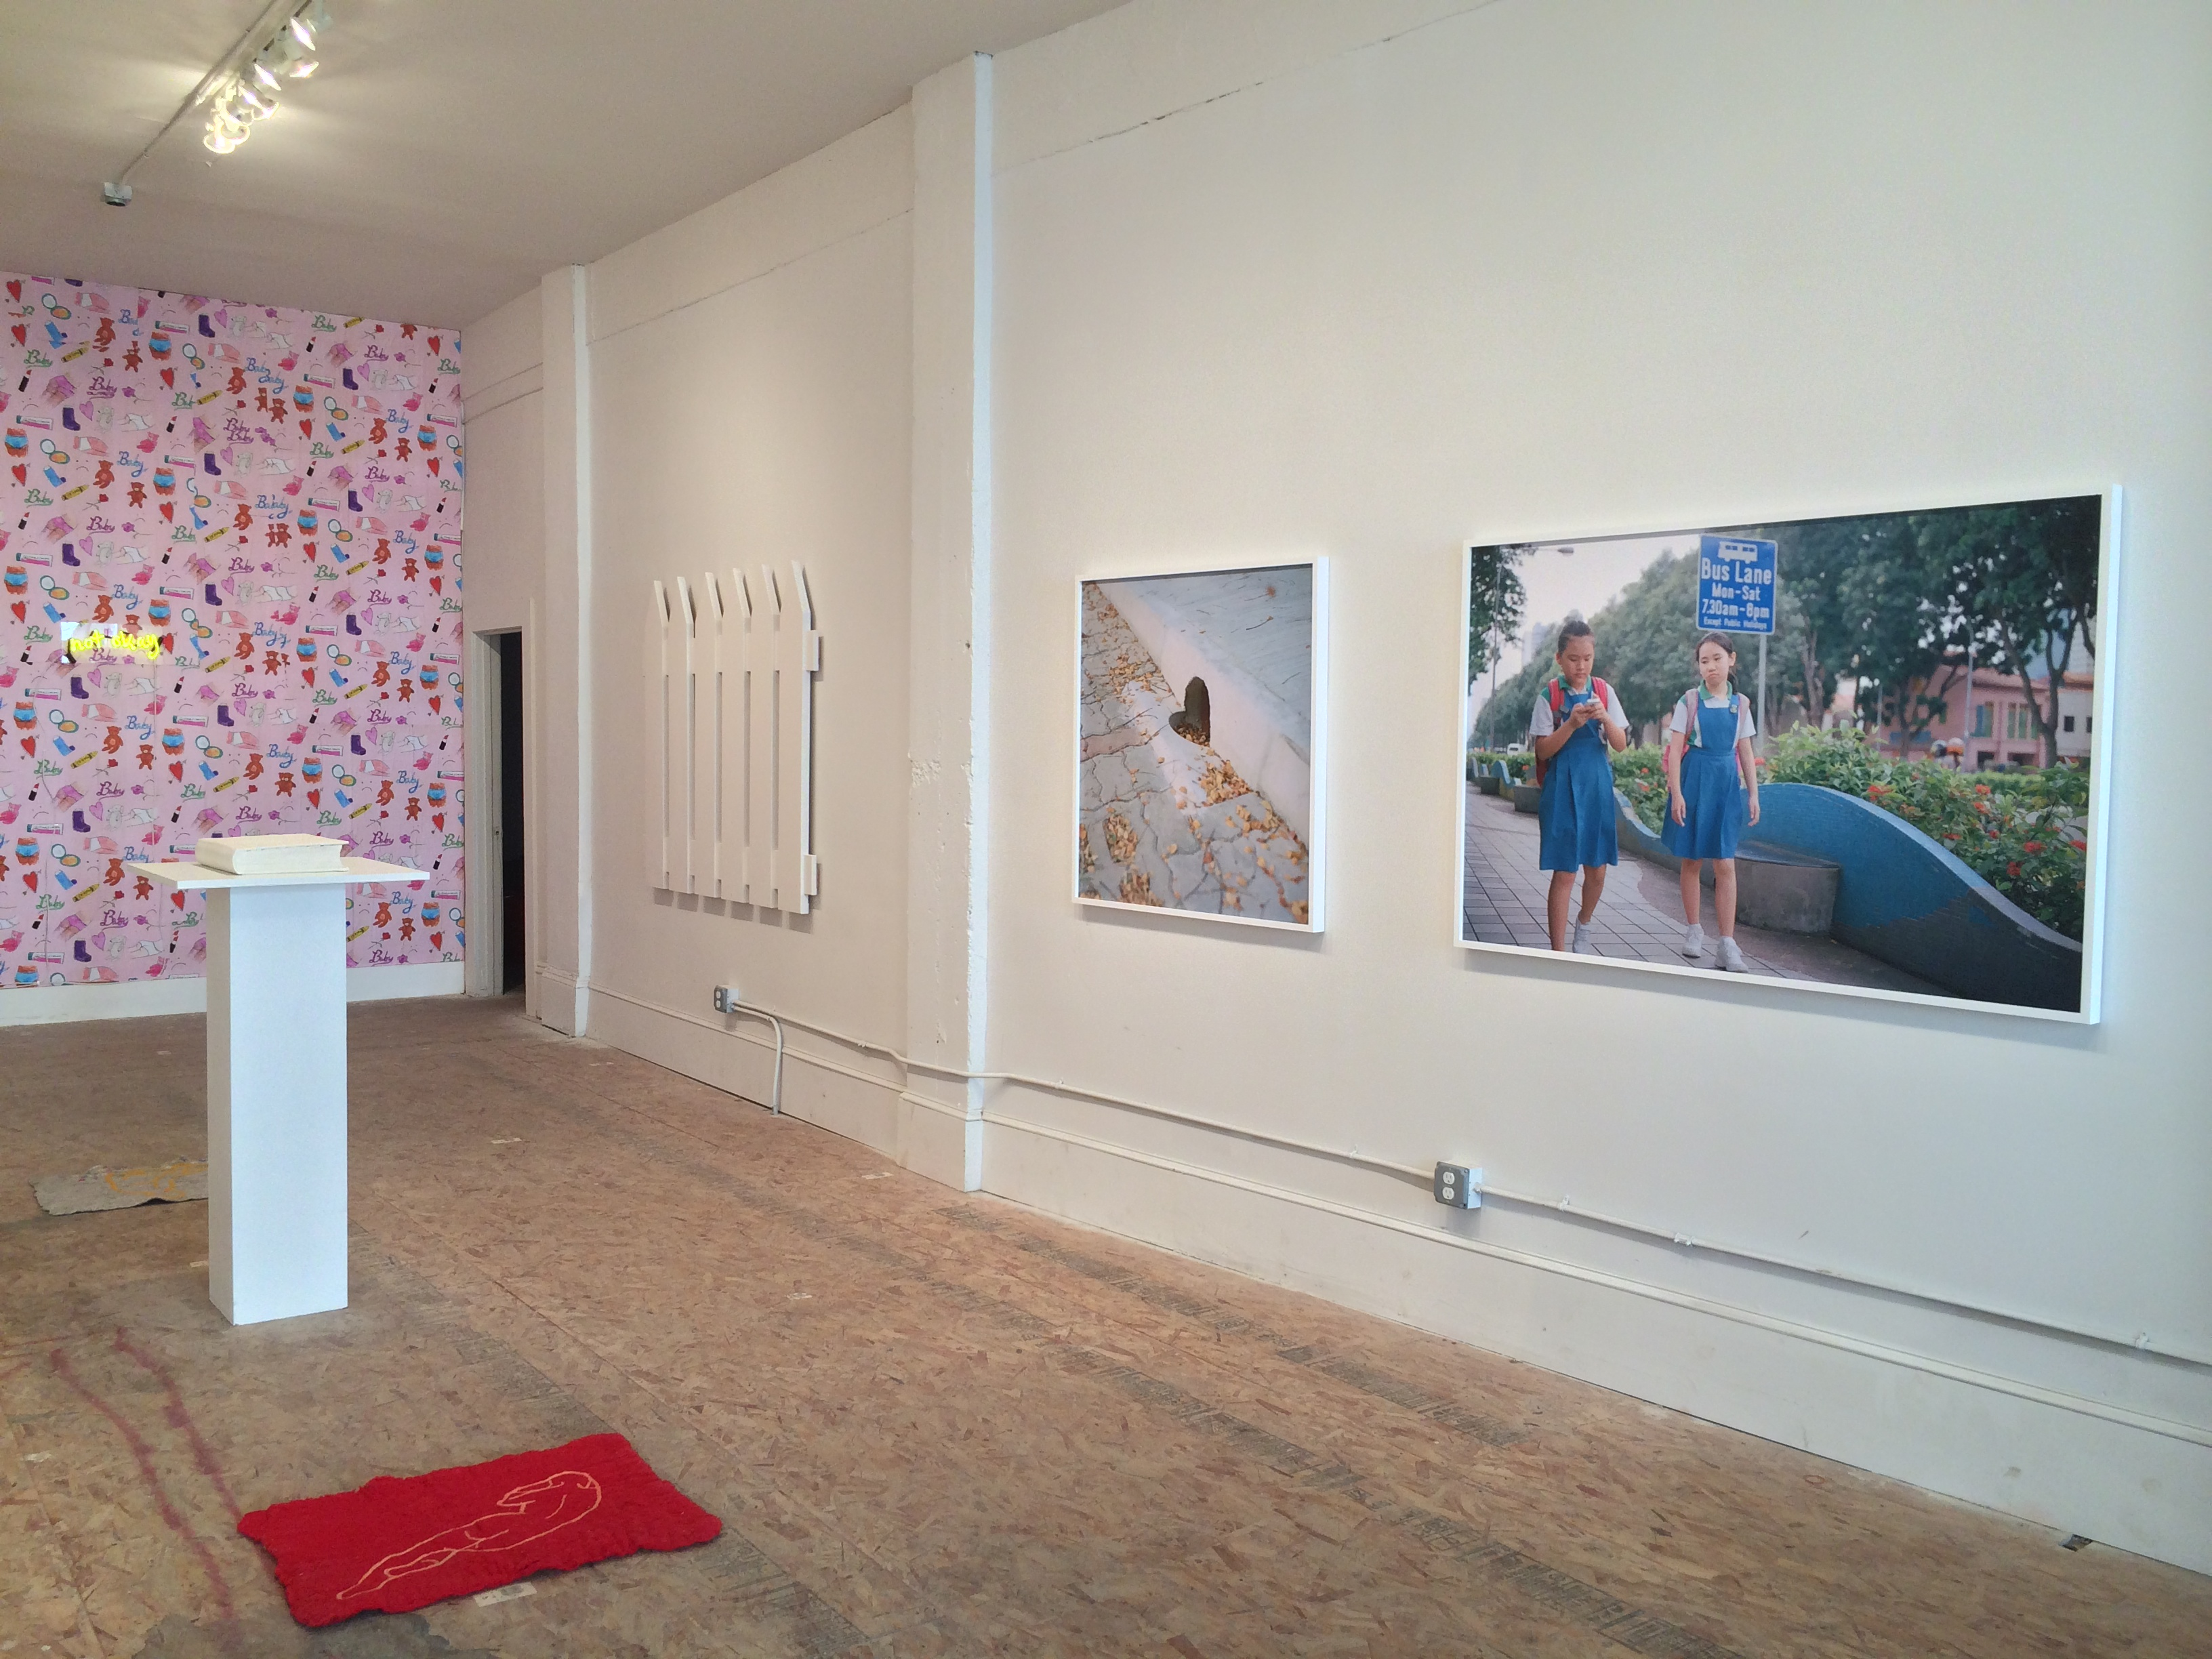 Installation view of Comforter at SFAQ[Project]Space